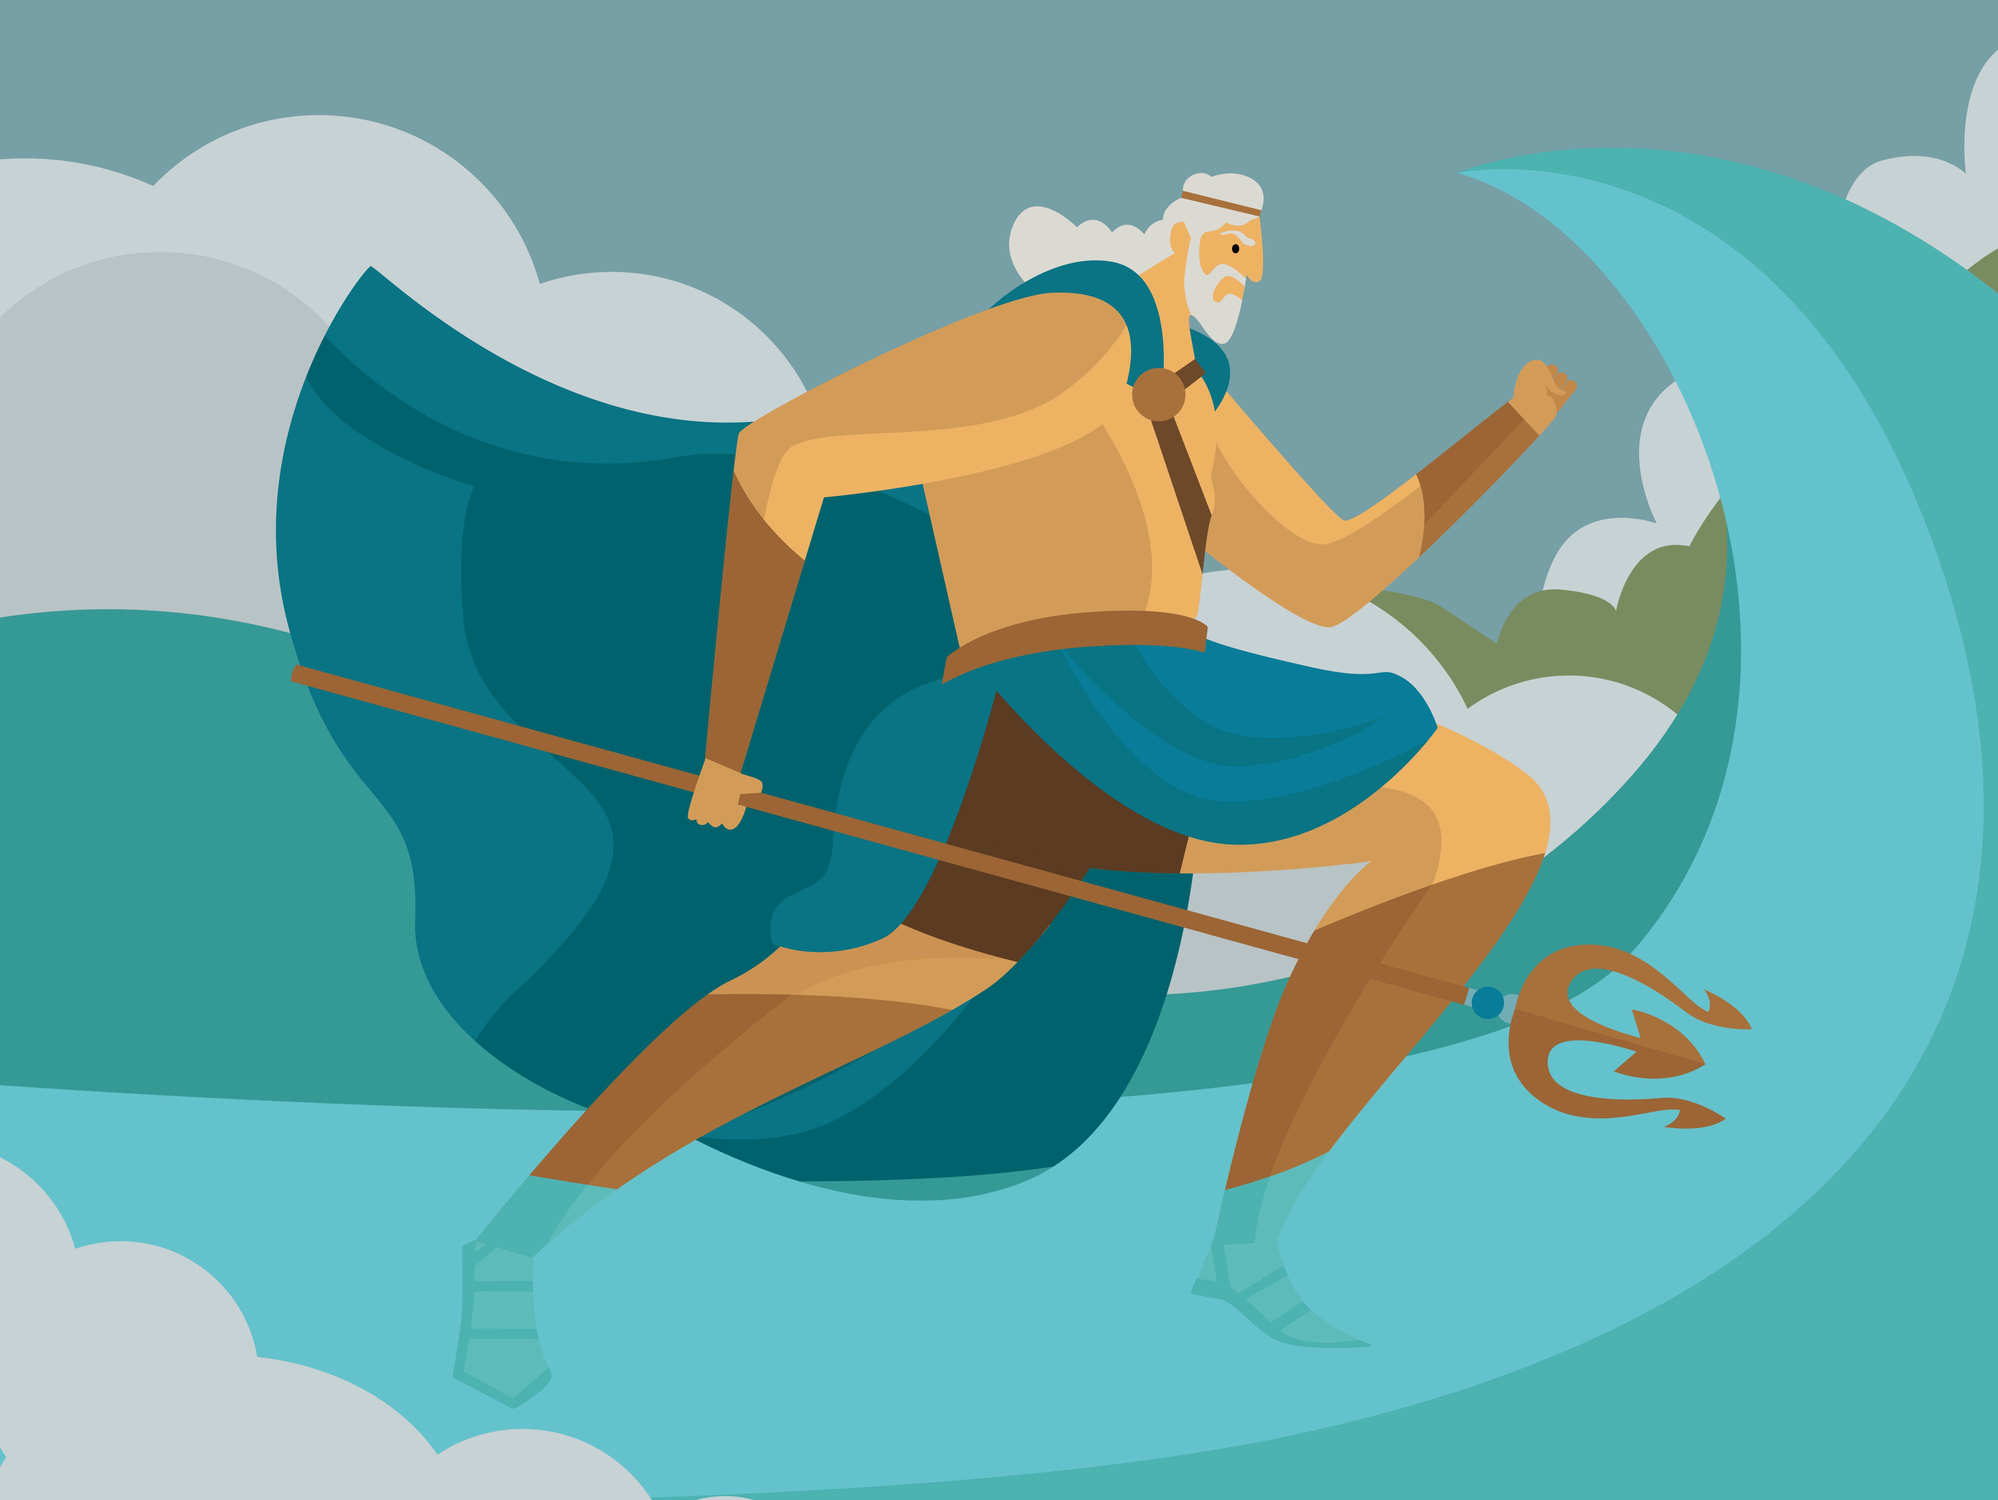 God Poseidon vector art illustration.